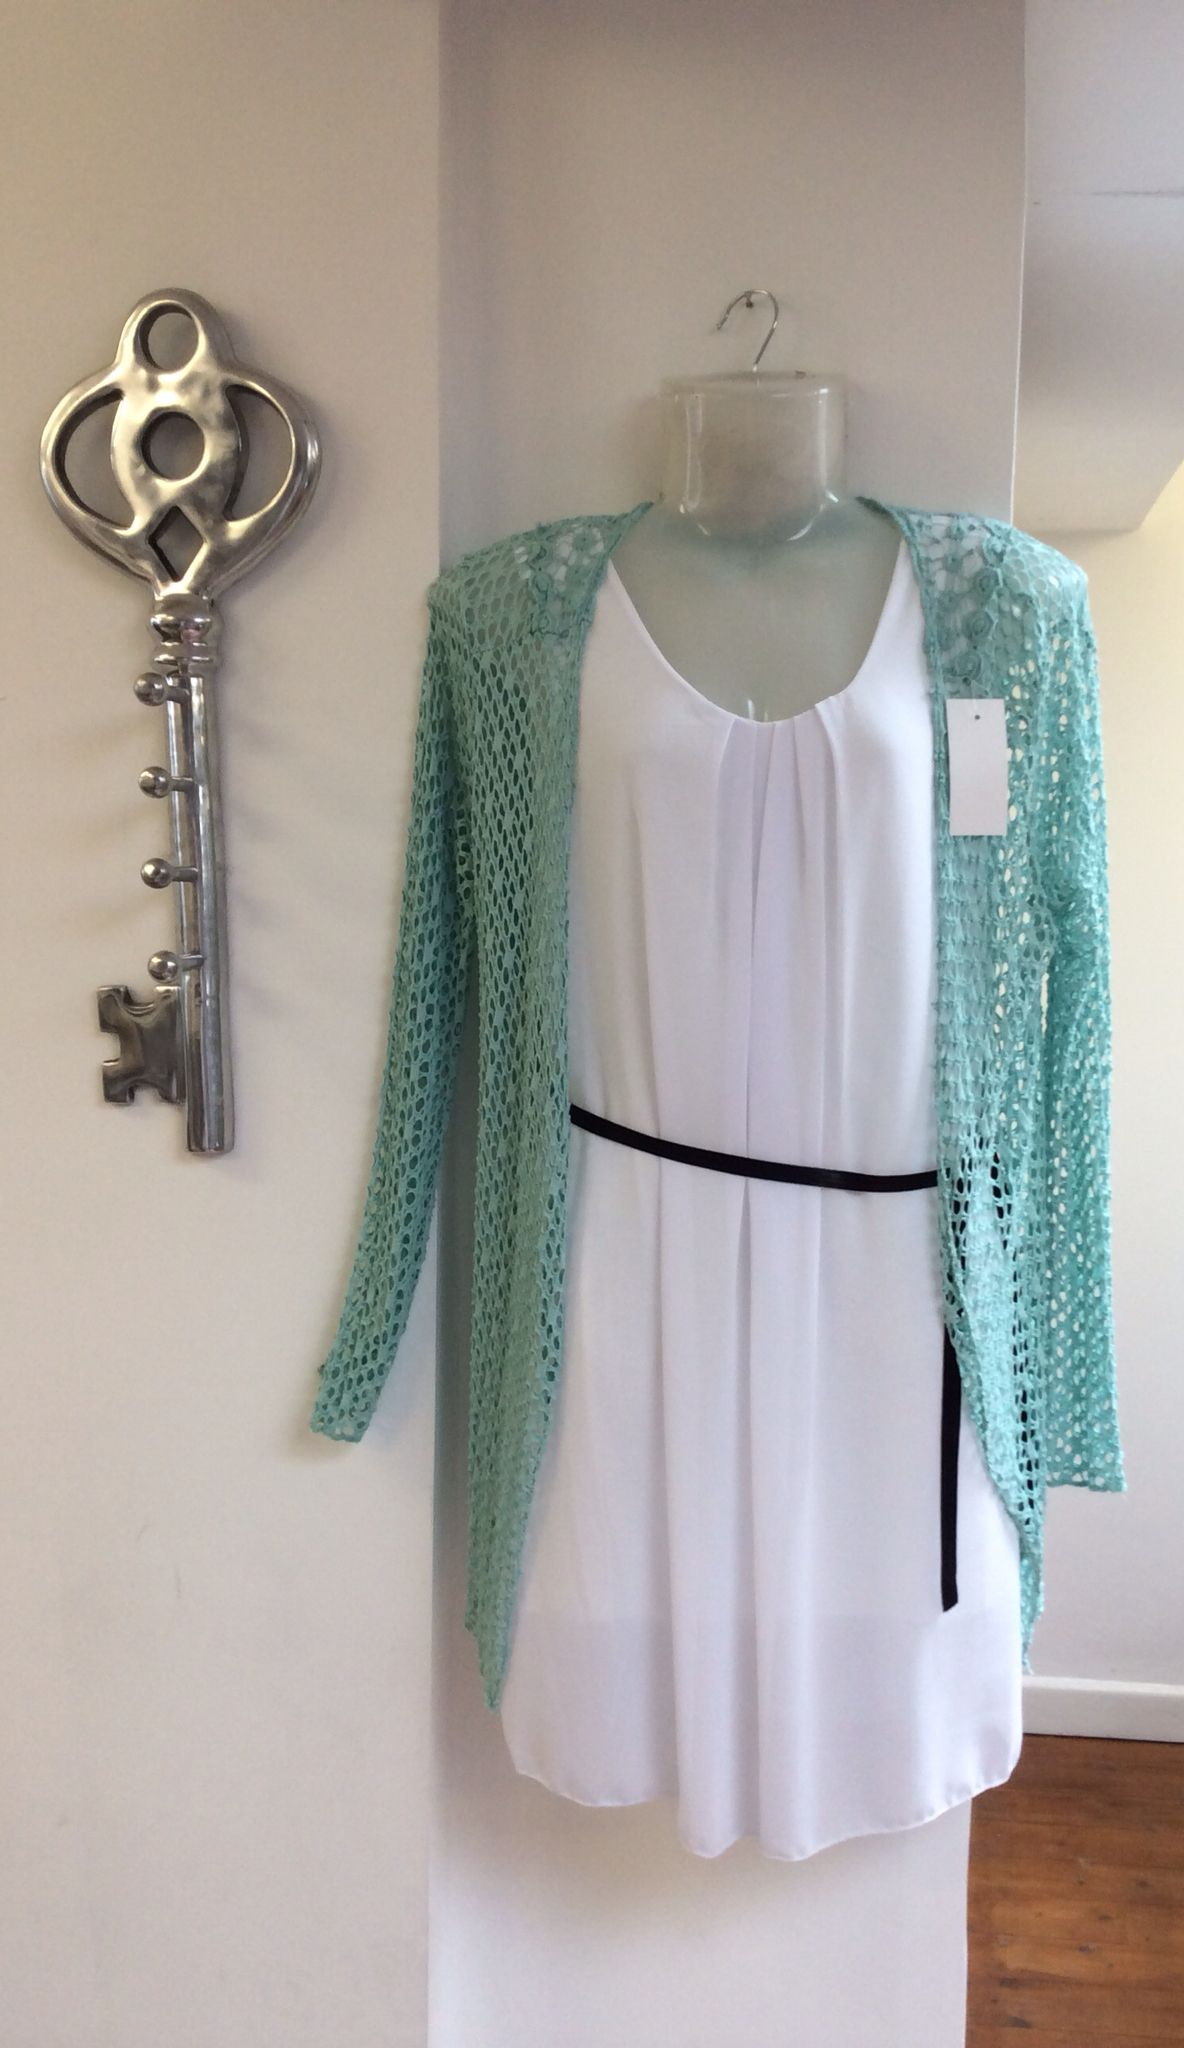 White long vest top with black belt £38.00 and turquoise mesh cardigan £35.00 for the smart casual look... - FREE DELIVERY!